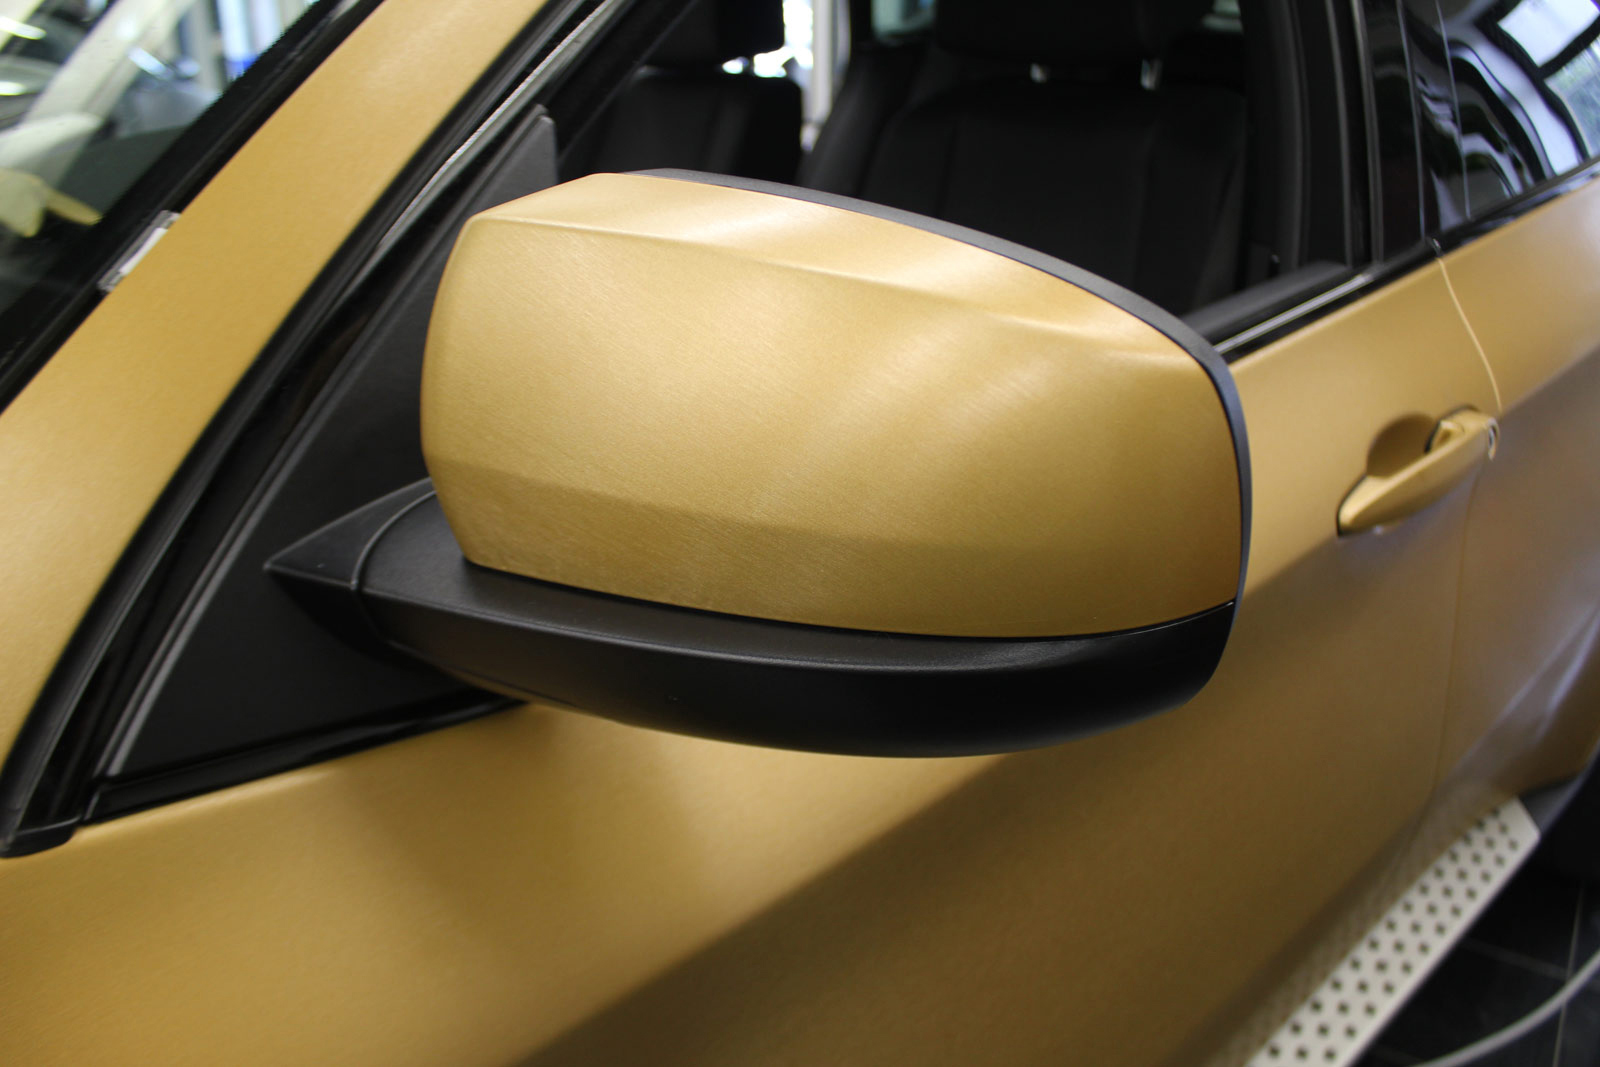 BMW_X6_VERKLEBUNG_BRUSHED_GOLD_47